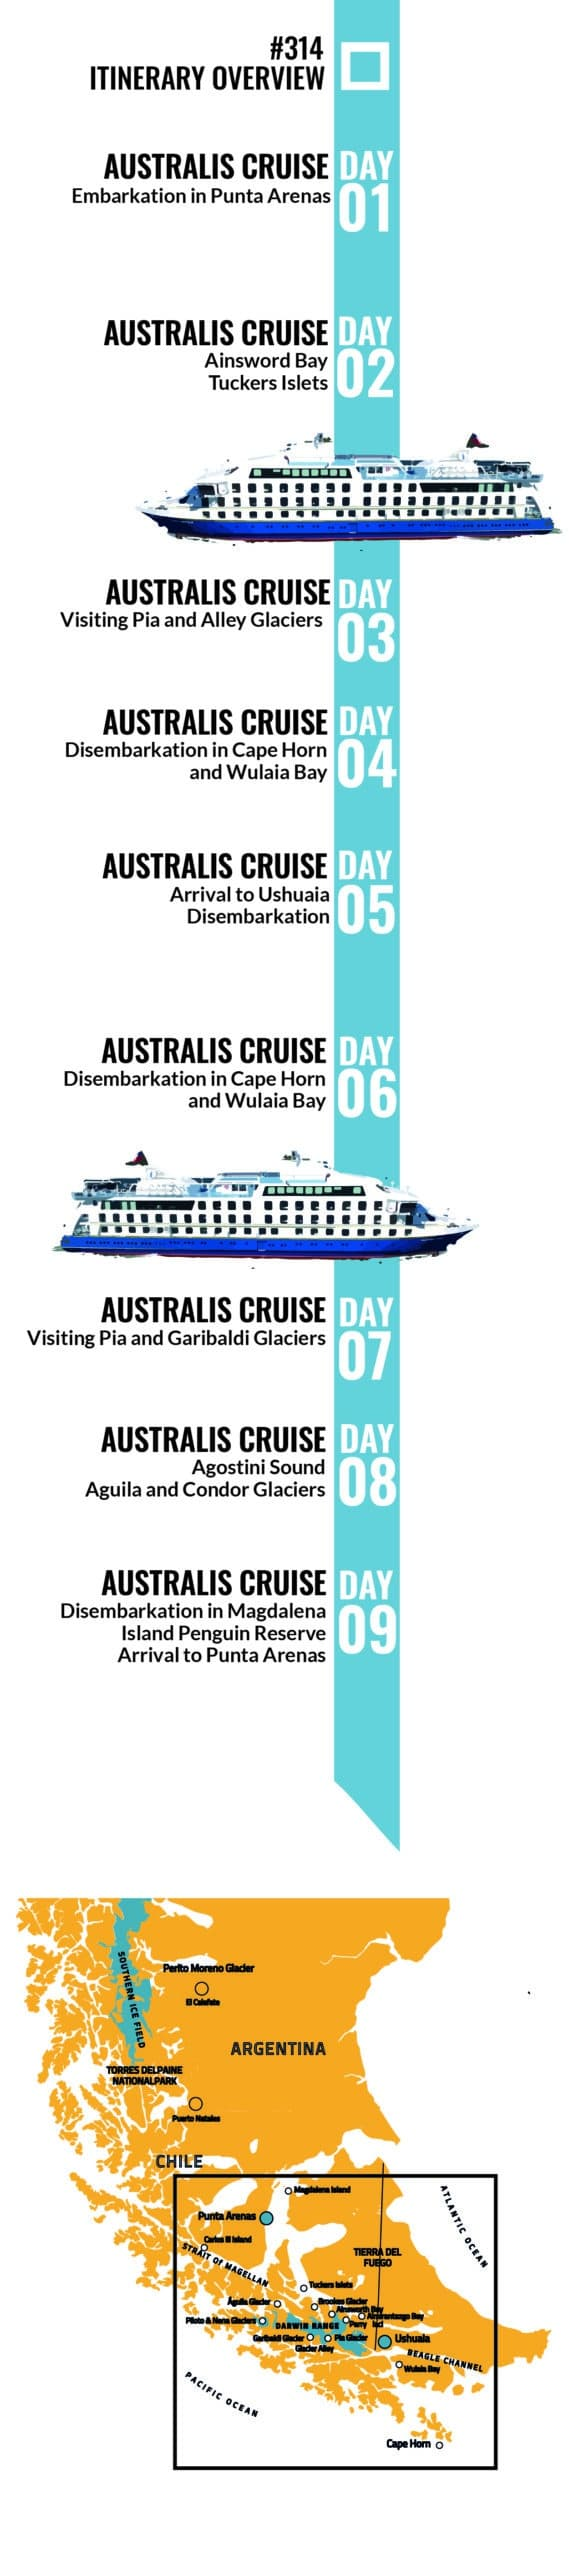 Darwins Route with Australis Cruise